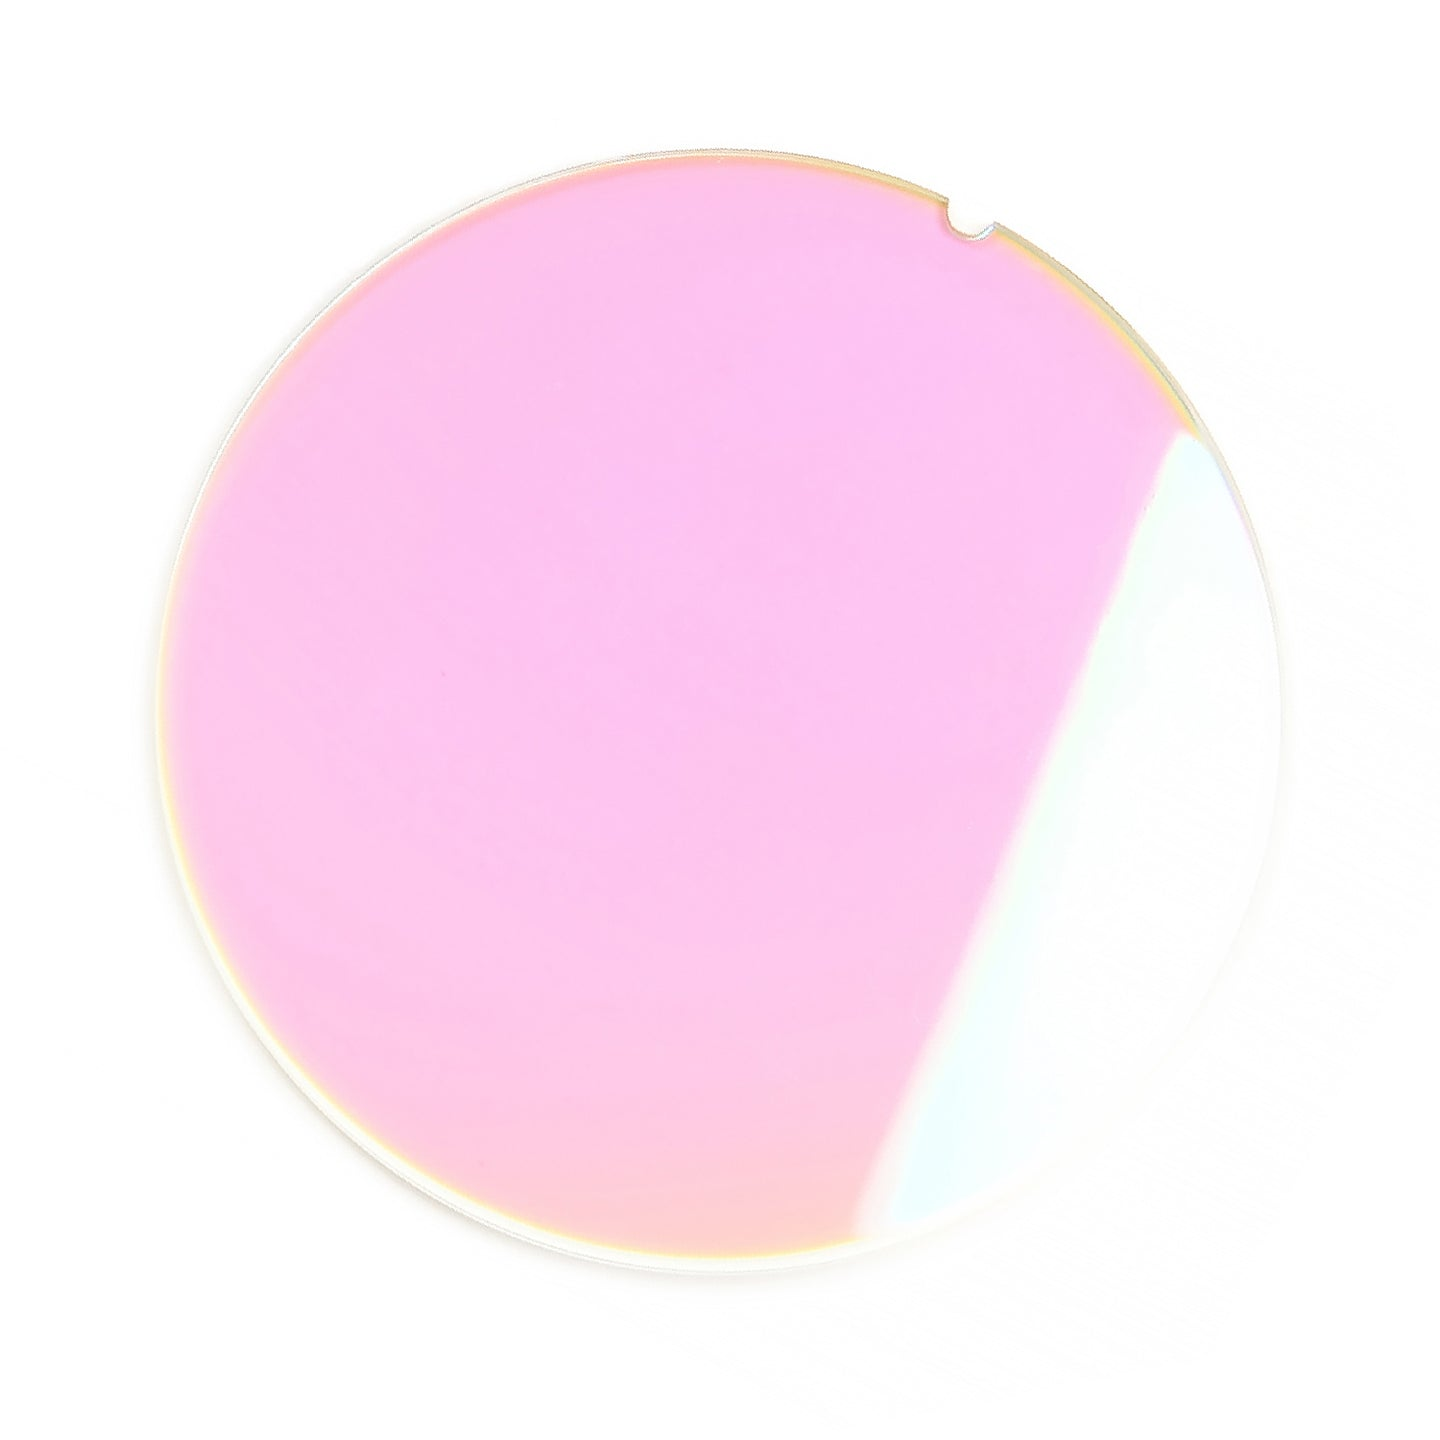 183 - Pink Solid Flat Multi Flash Lens